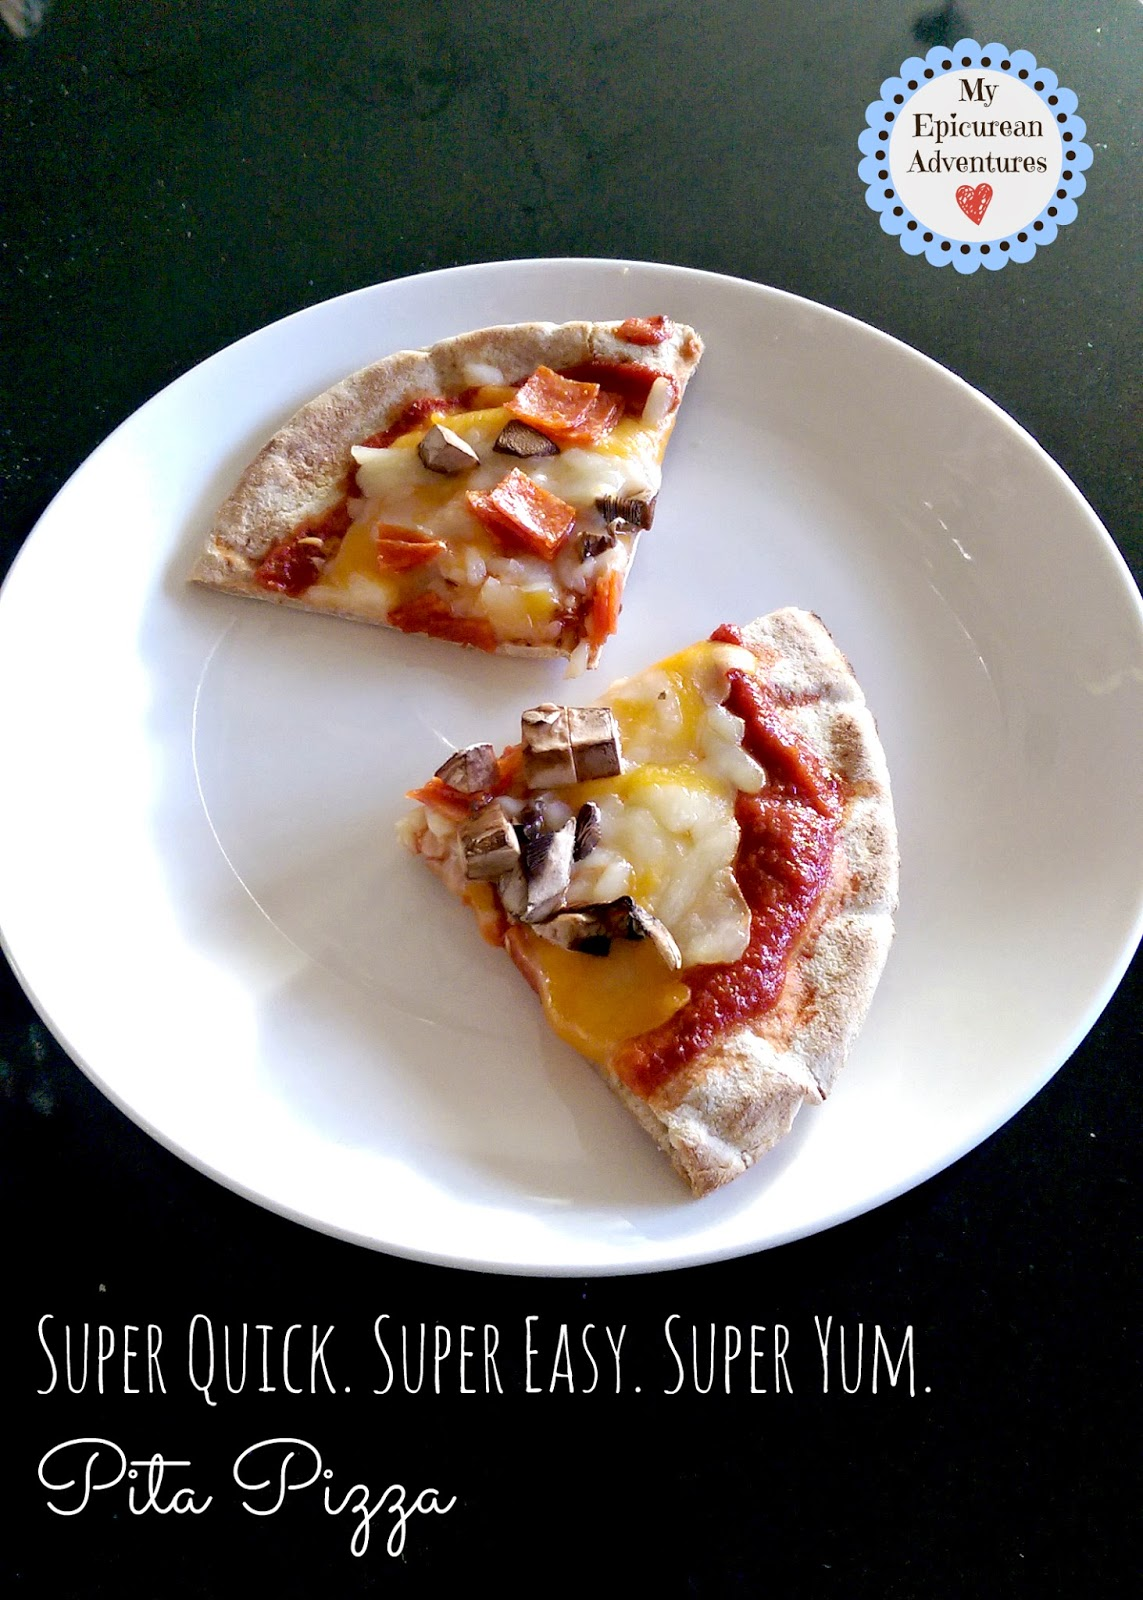 Super Quick. Super Easy. Super Yum. Pita Pizza!